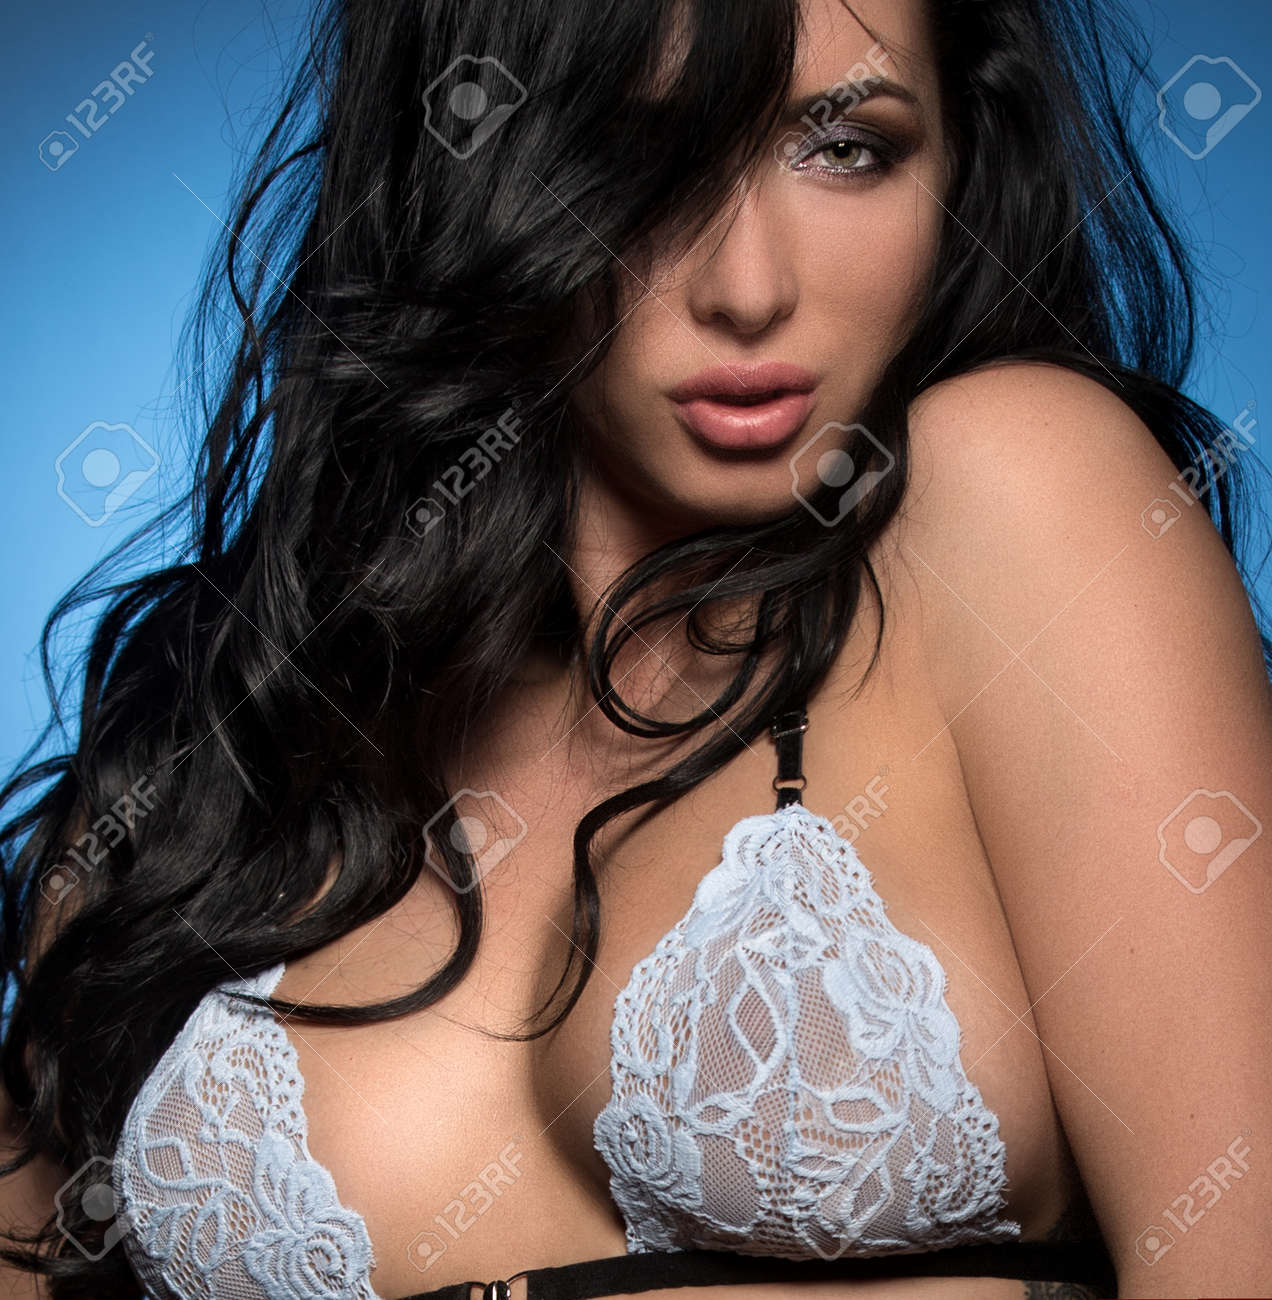 Beautiful And Sexy Girl Posing With Emotions In Erotic Clothes Stock Photo 92347964